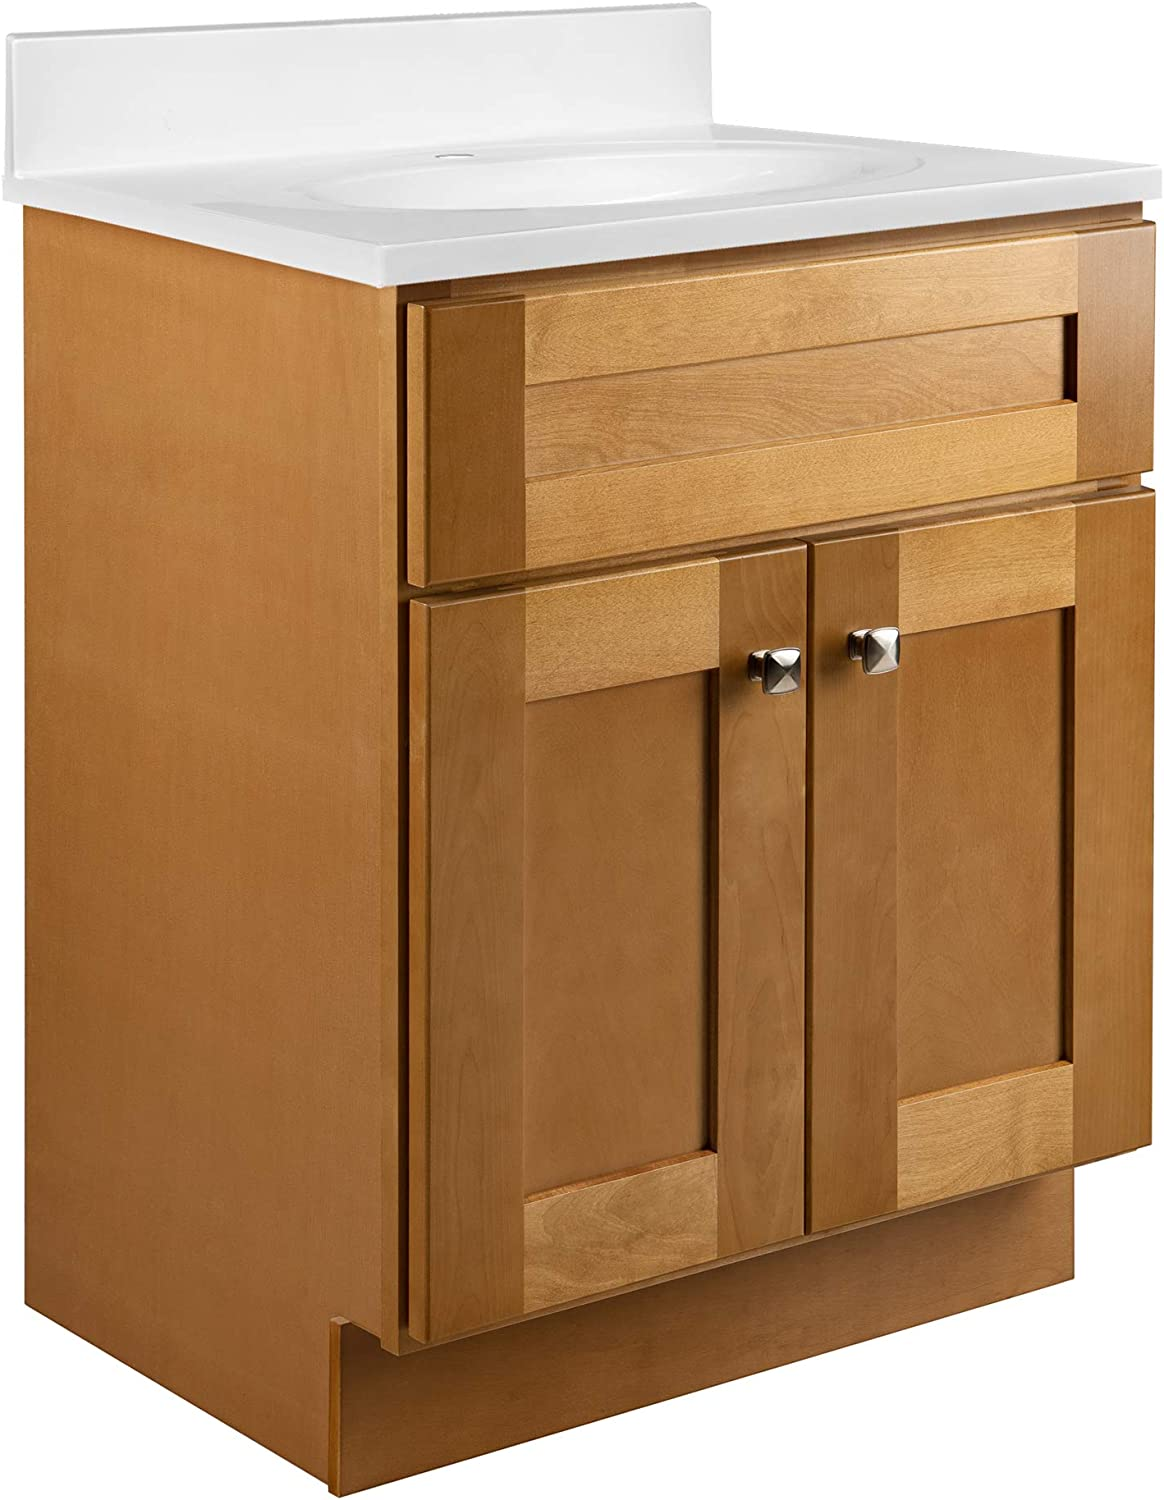 Design House 587105 Brookings Unassembled Shaker Vanity Cabinet Only, 24 x 18, Modern Birch